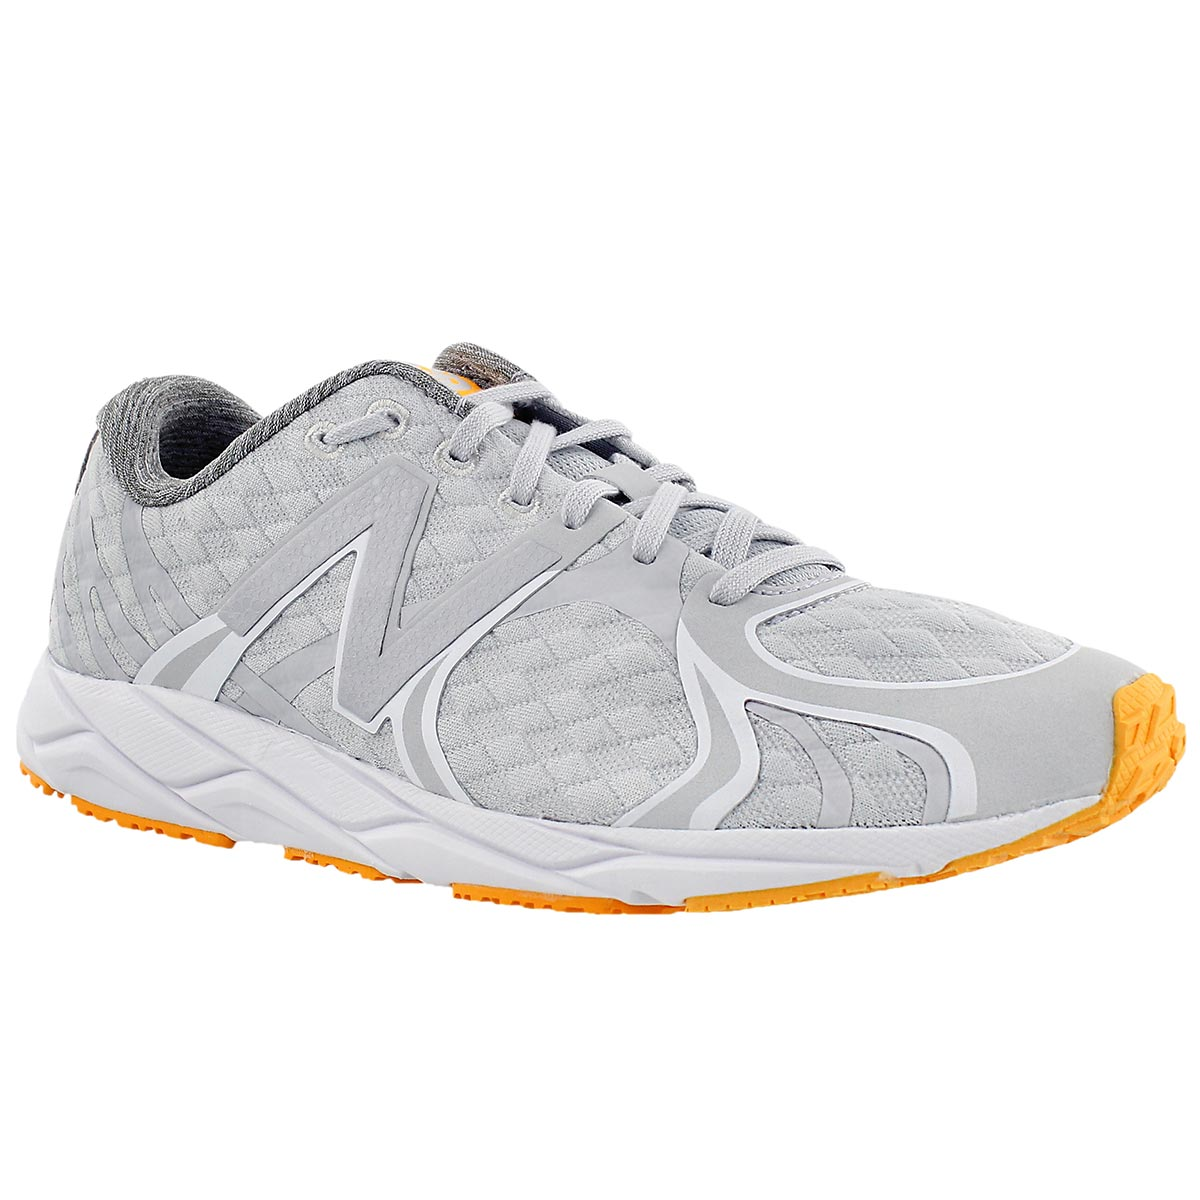 Lds 1400 grey lace up sneaker